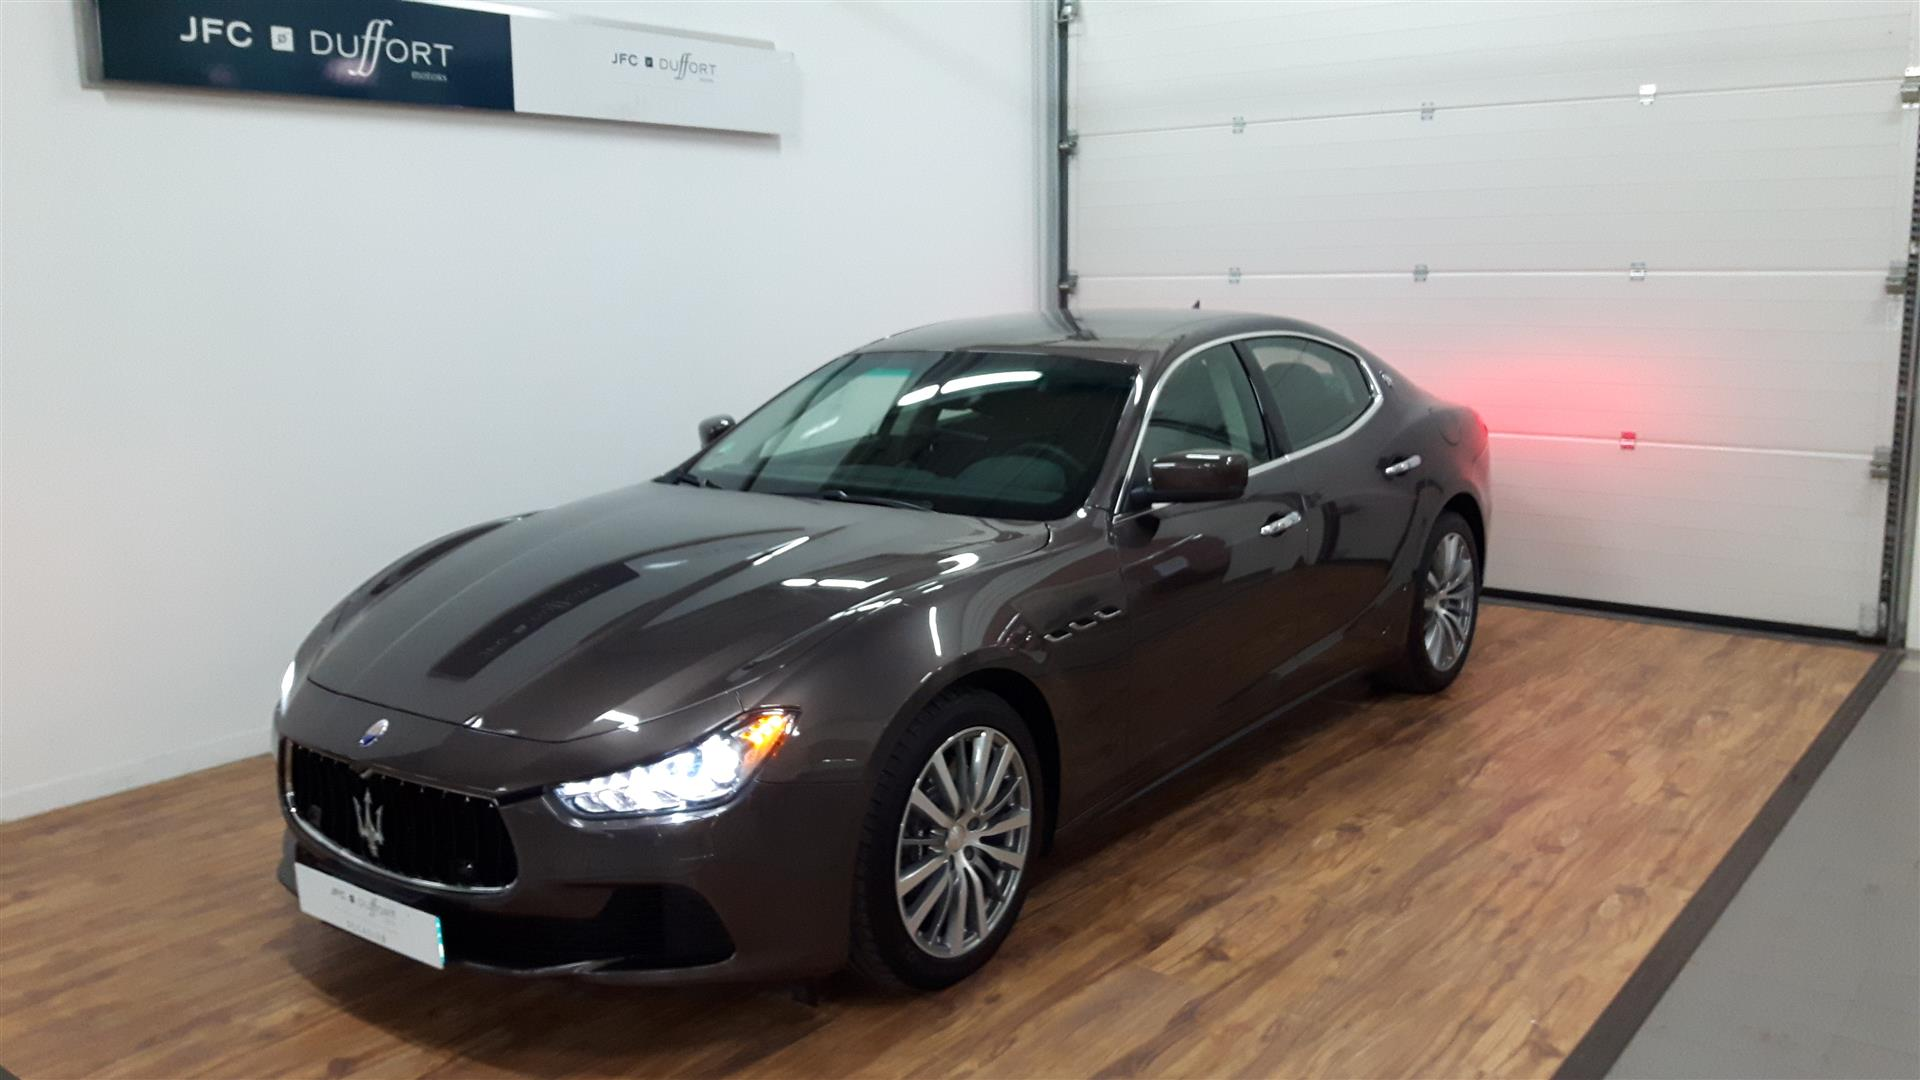 maserati ghibli voiture d couvrir chez jfc duffort motors. Black Bedroom Furniture Sets. Home Design Ideas